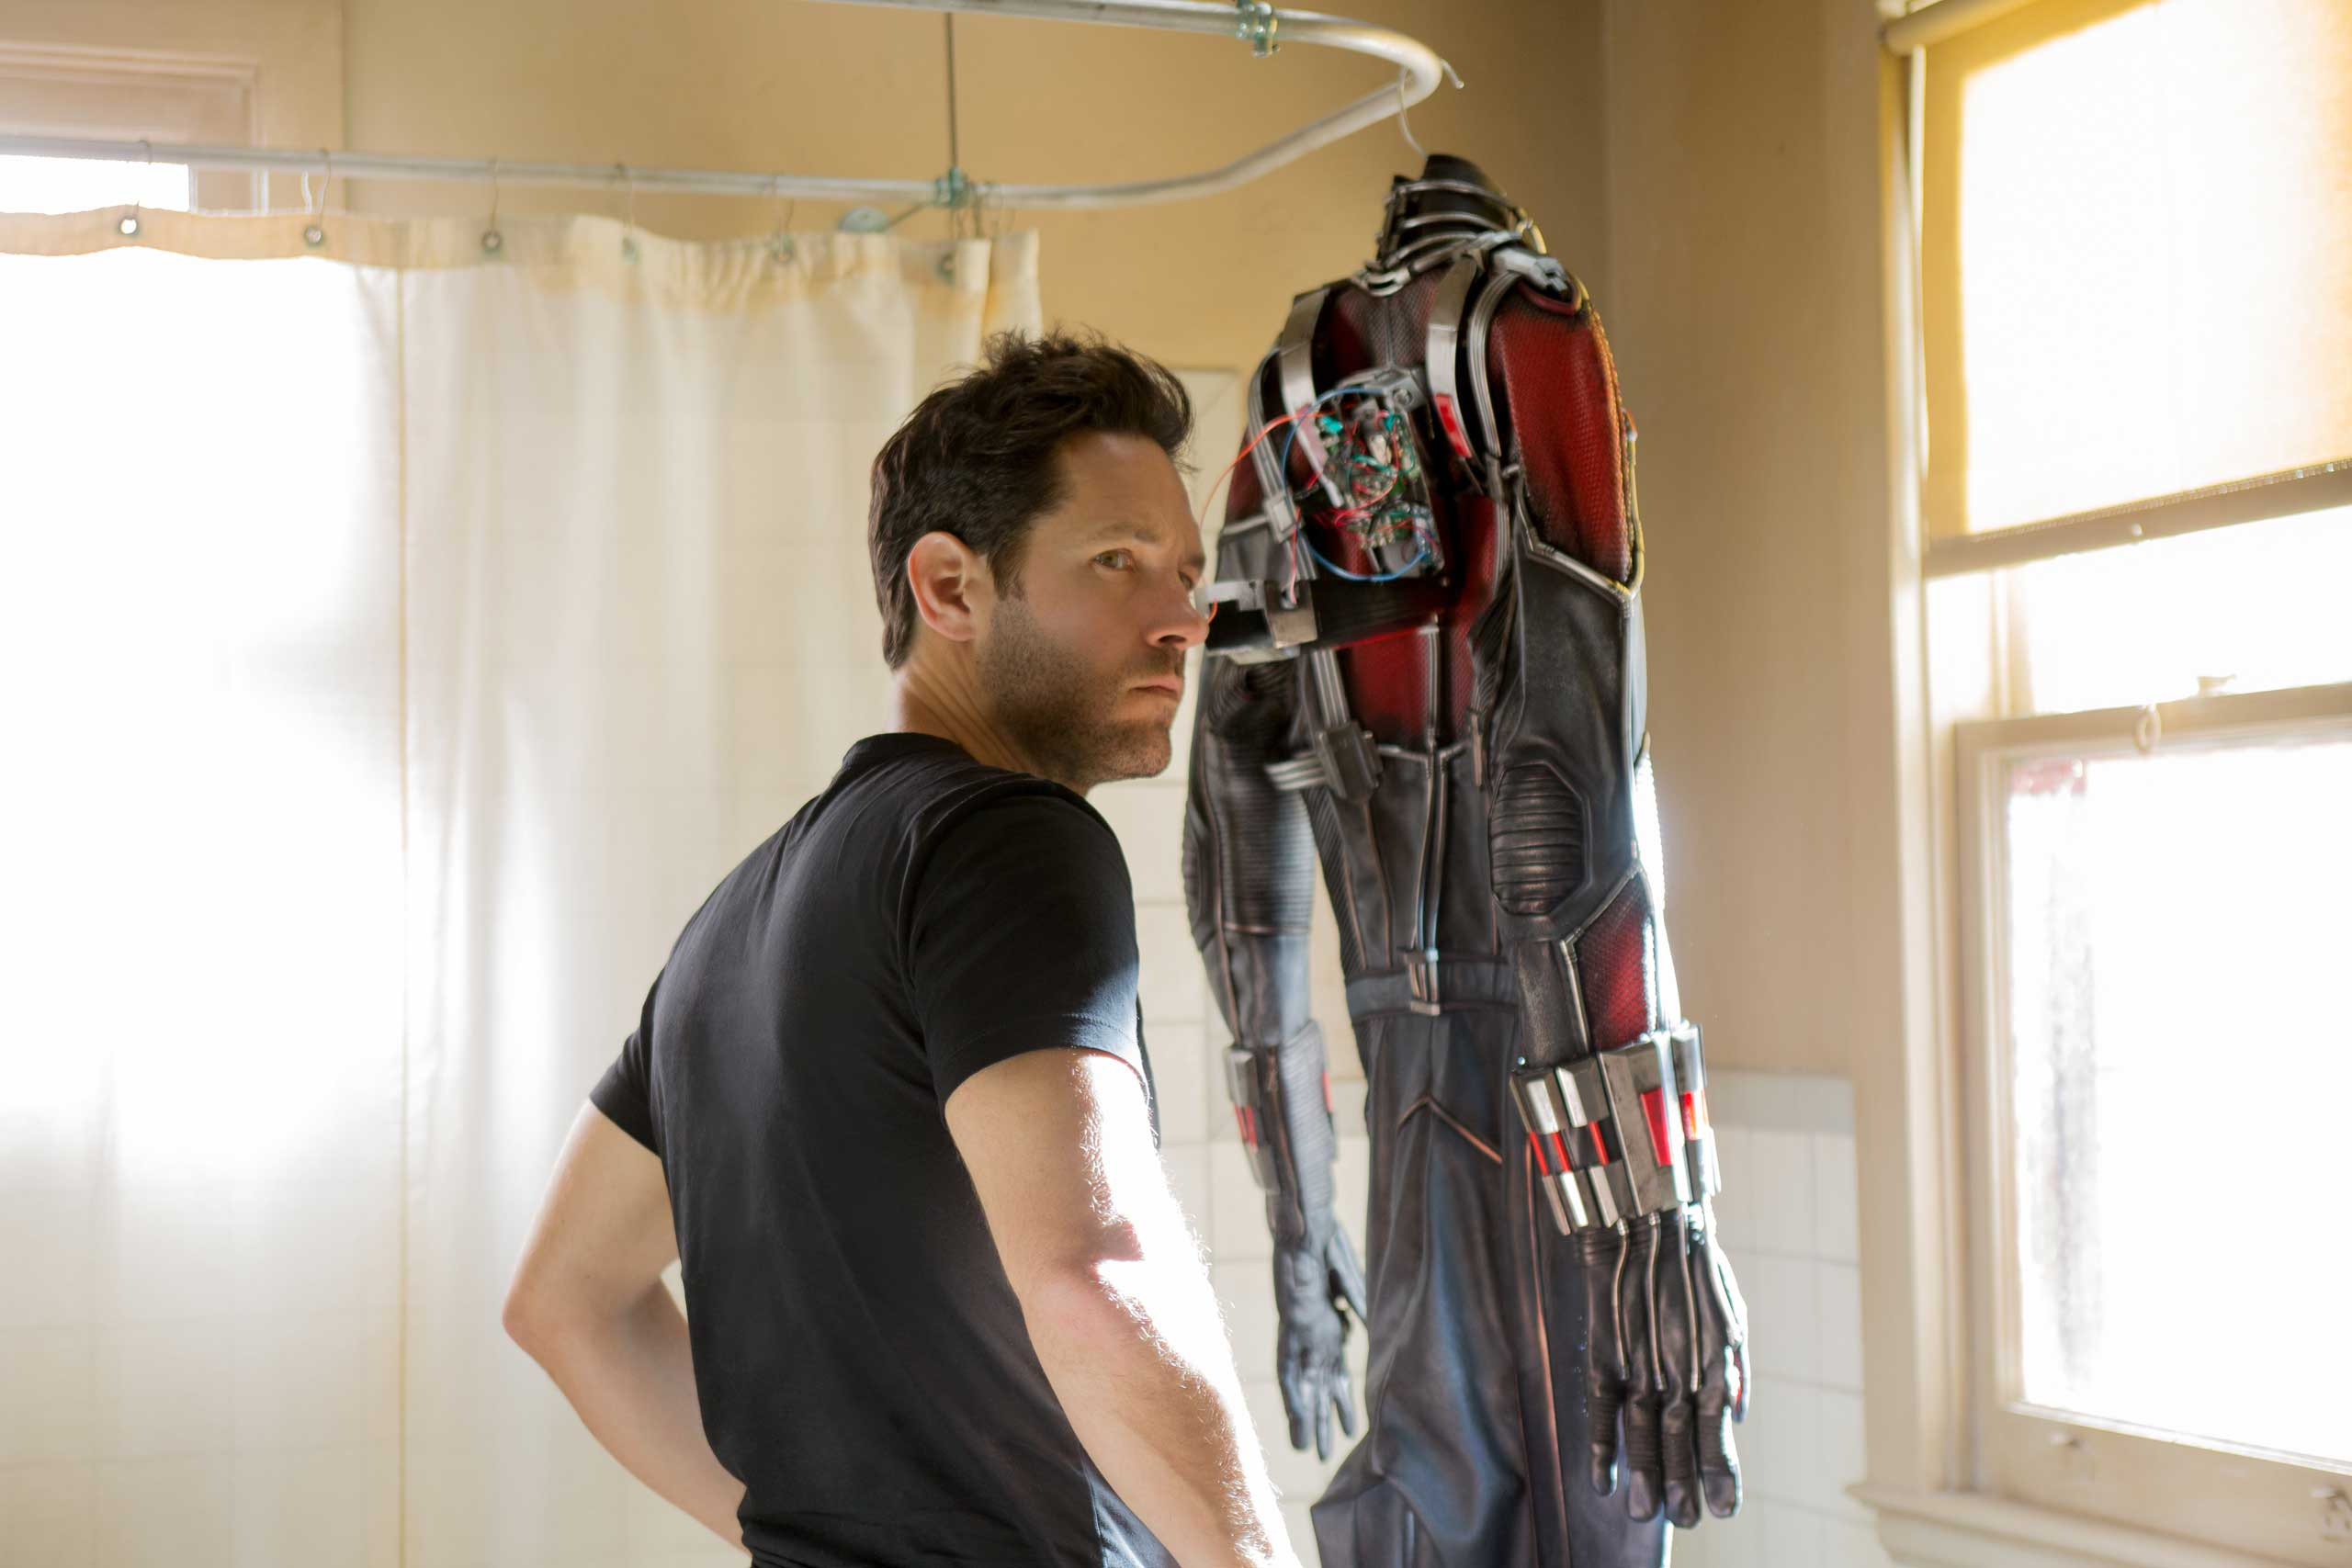 Marvel's Ant-Man, played by Paul Rudd, in the movie distributed by Walt Disney Studios.